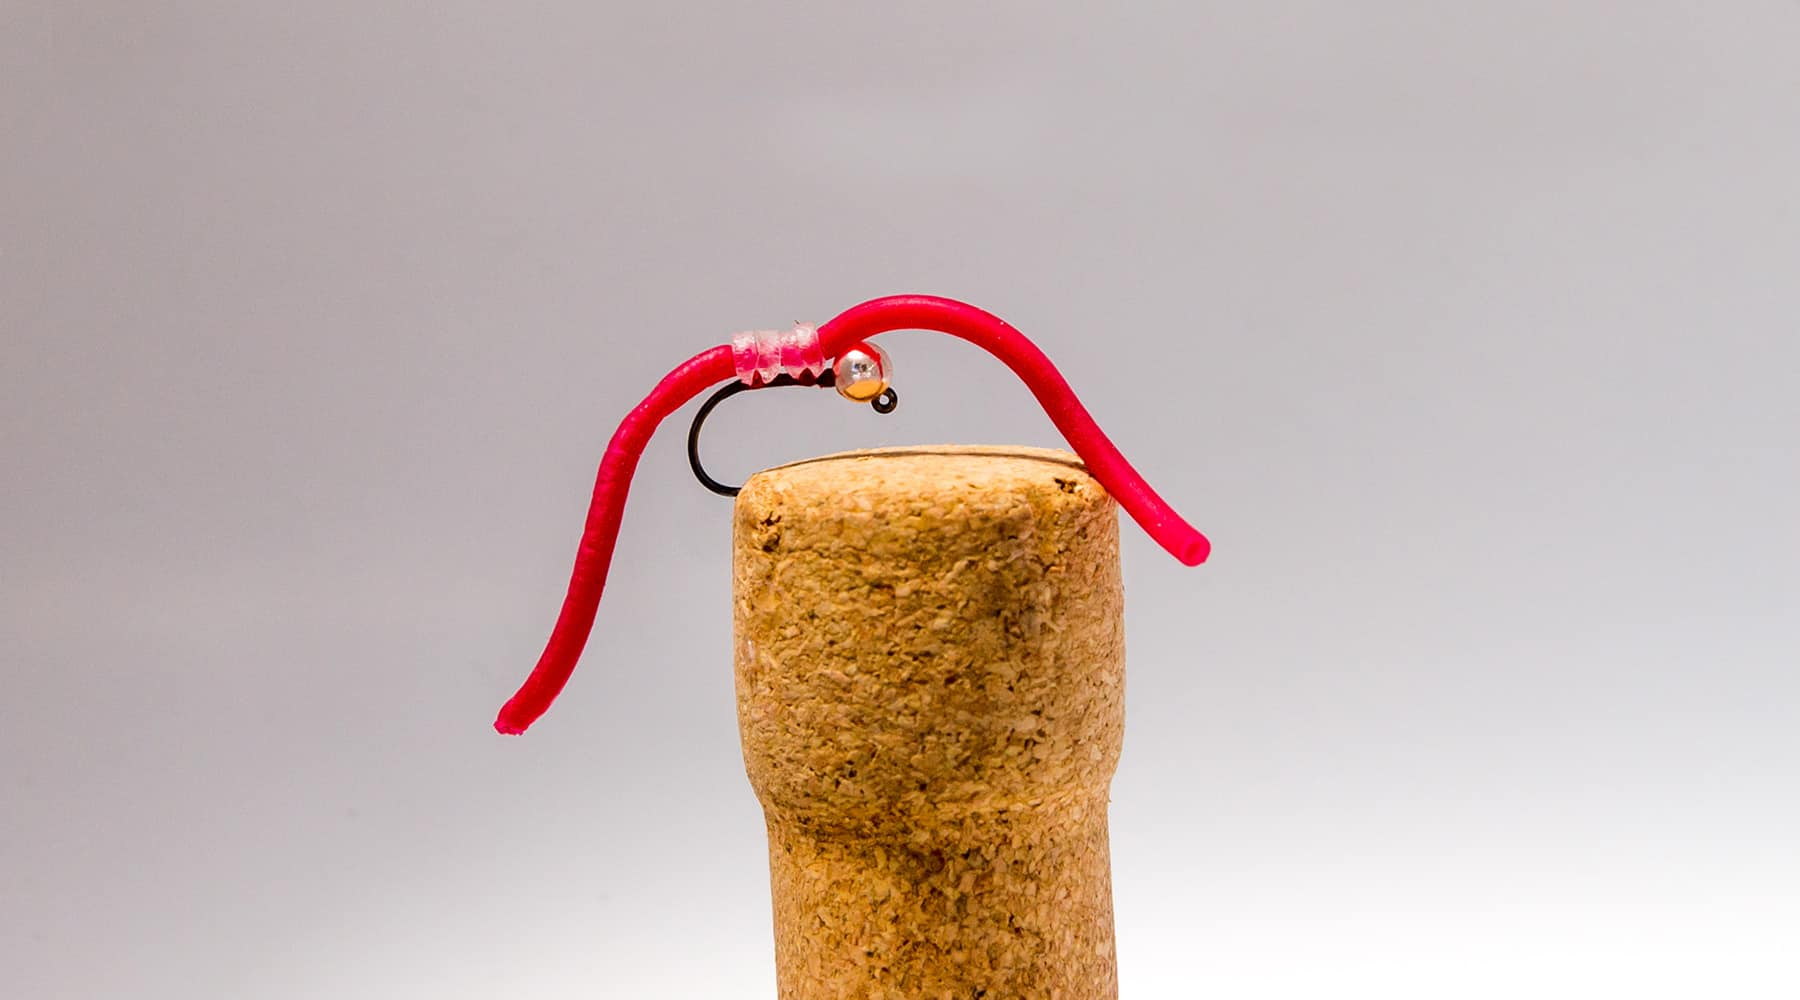 An Improved Squirmy Wormy: How to tie the improved strap on squirmy wormy fly